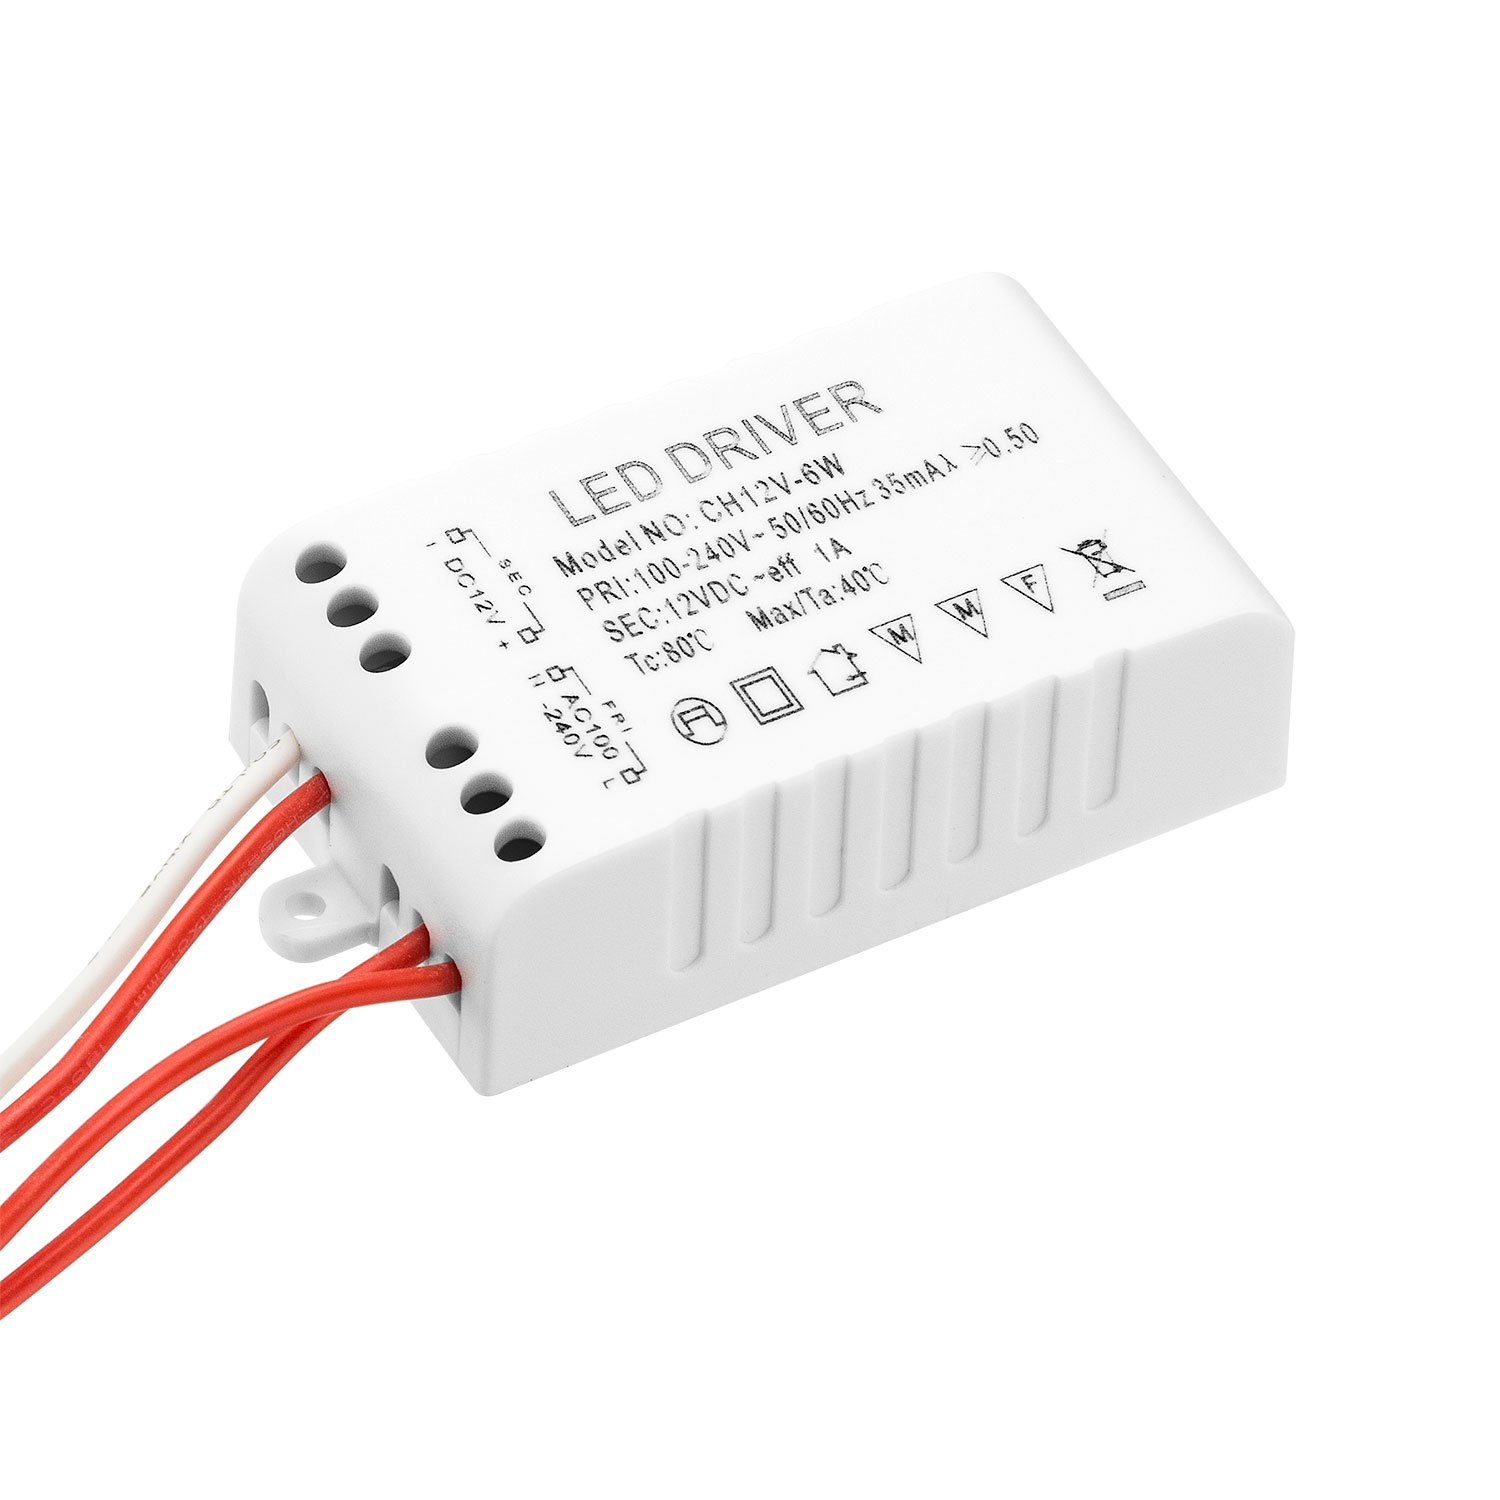 Cheap Led Driver Circuit Find Deals On Line At 3v Get Quotations Rayhoo Indoor Lighting Low Voltage Transformers Adapter Light Bulb Transformer Dc 12v Regulated